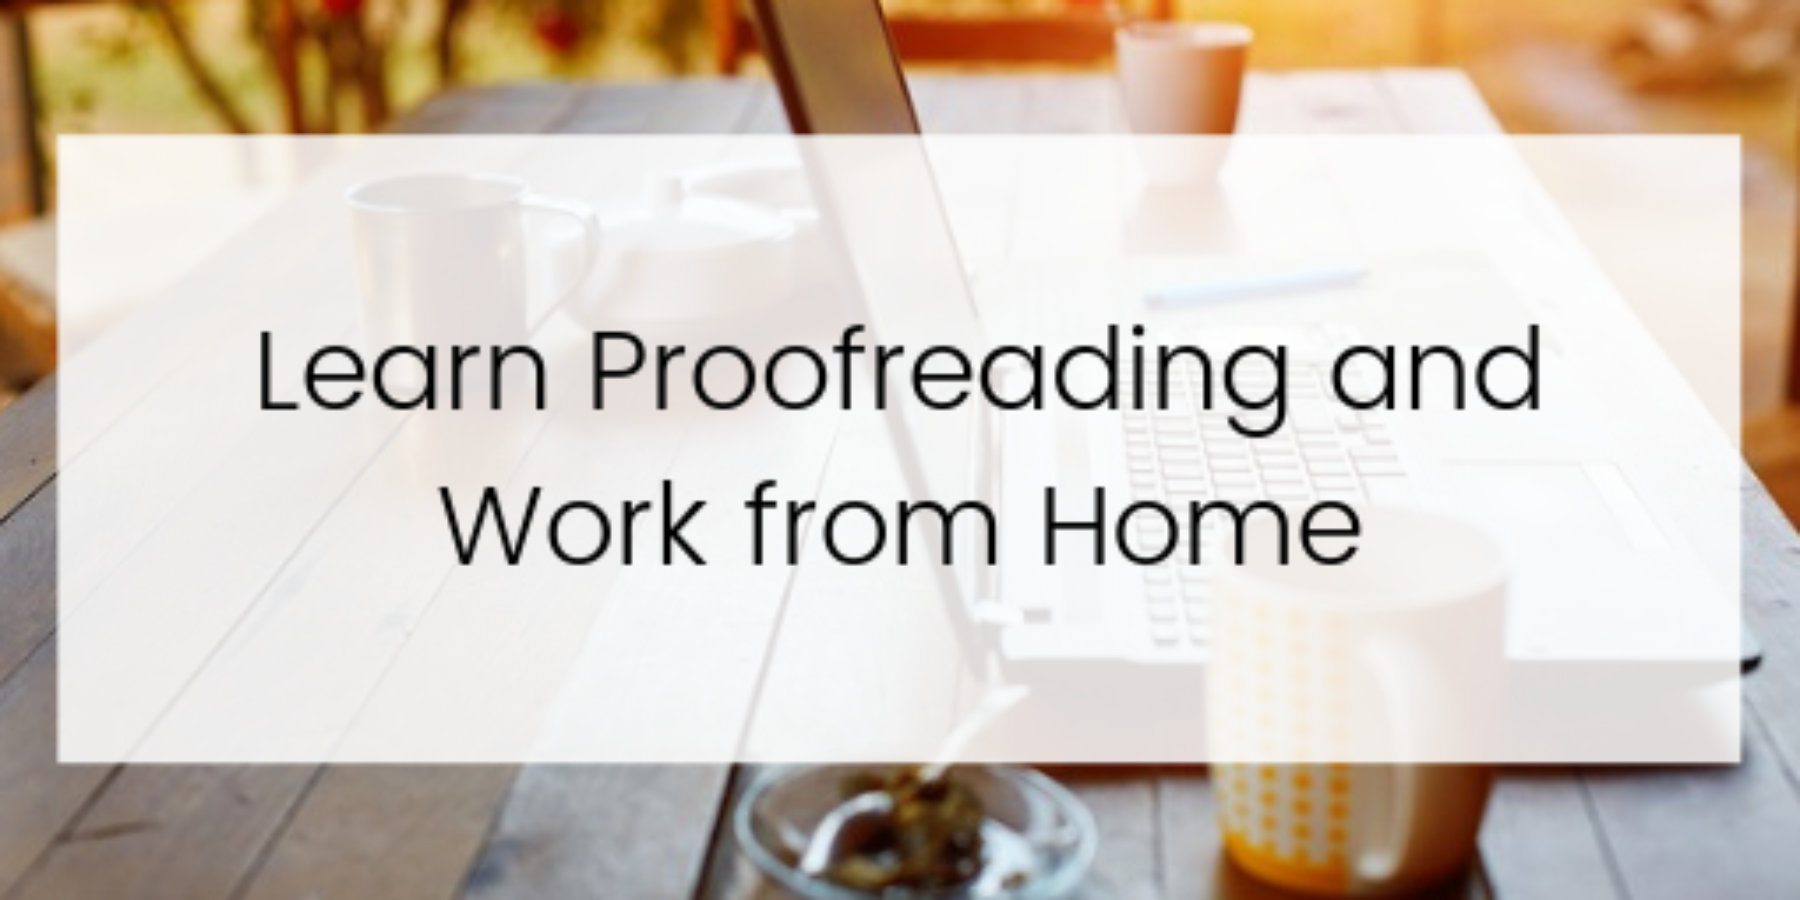 Learn proofreading and work from home